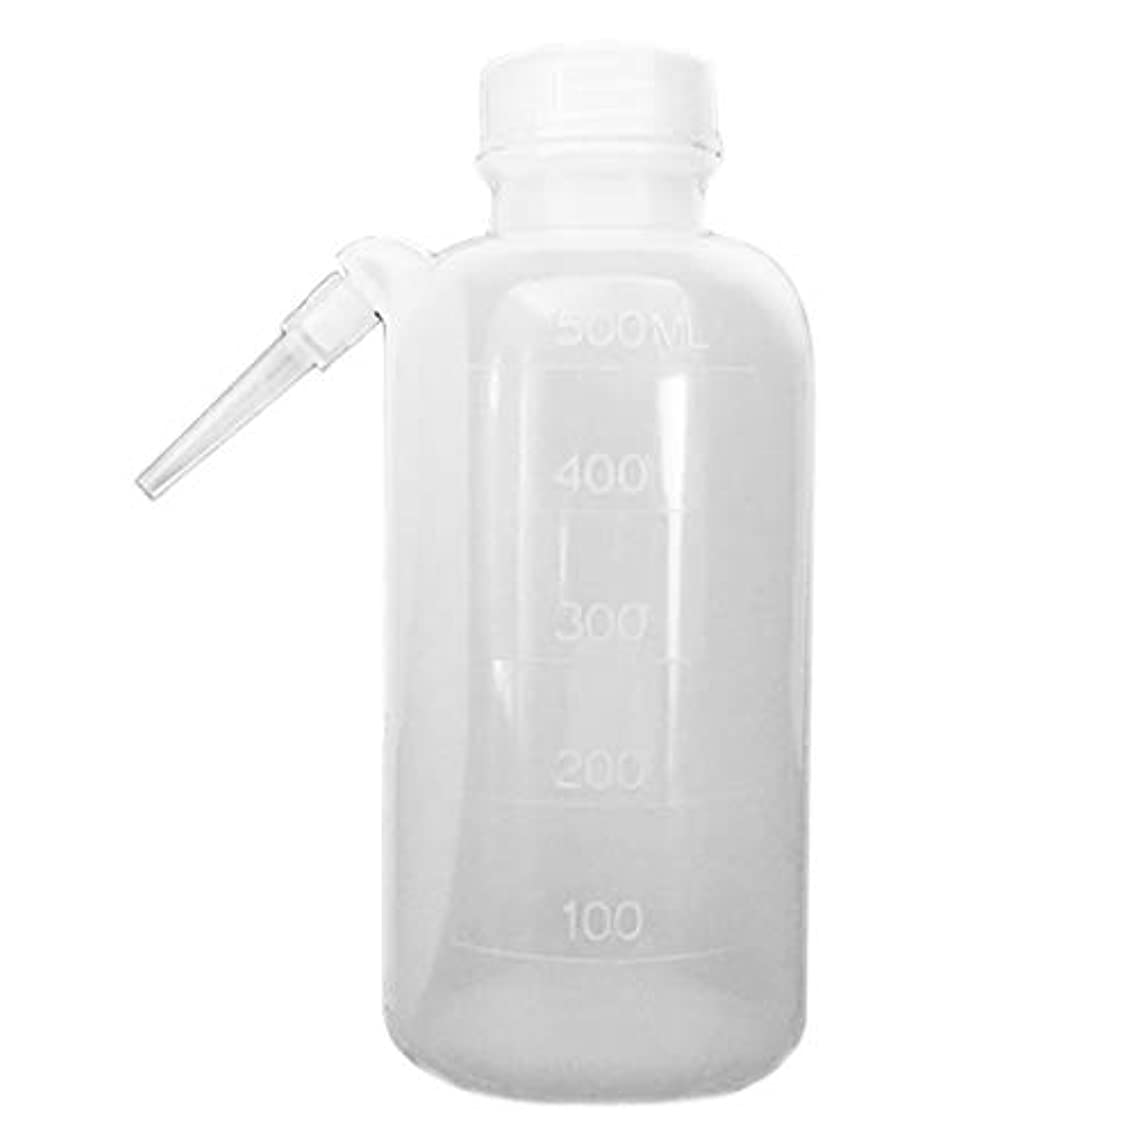 Firefly Refill Bottle for Refillable Liquid Candles and Oil Lamps